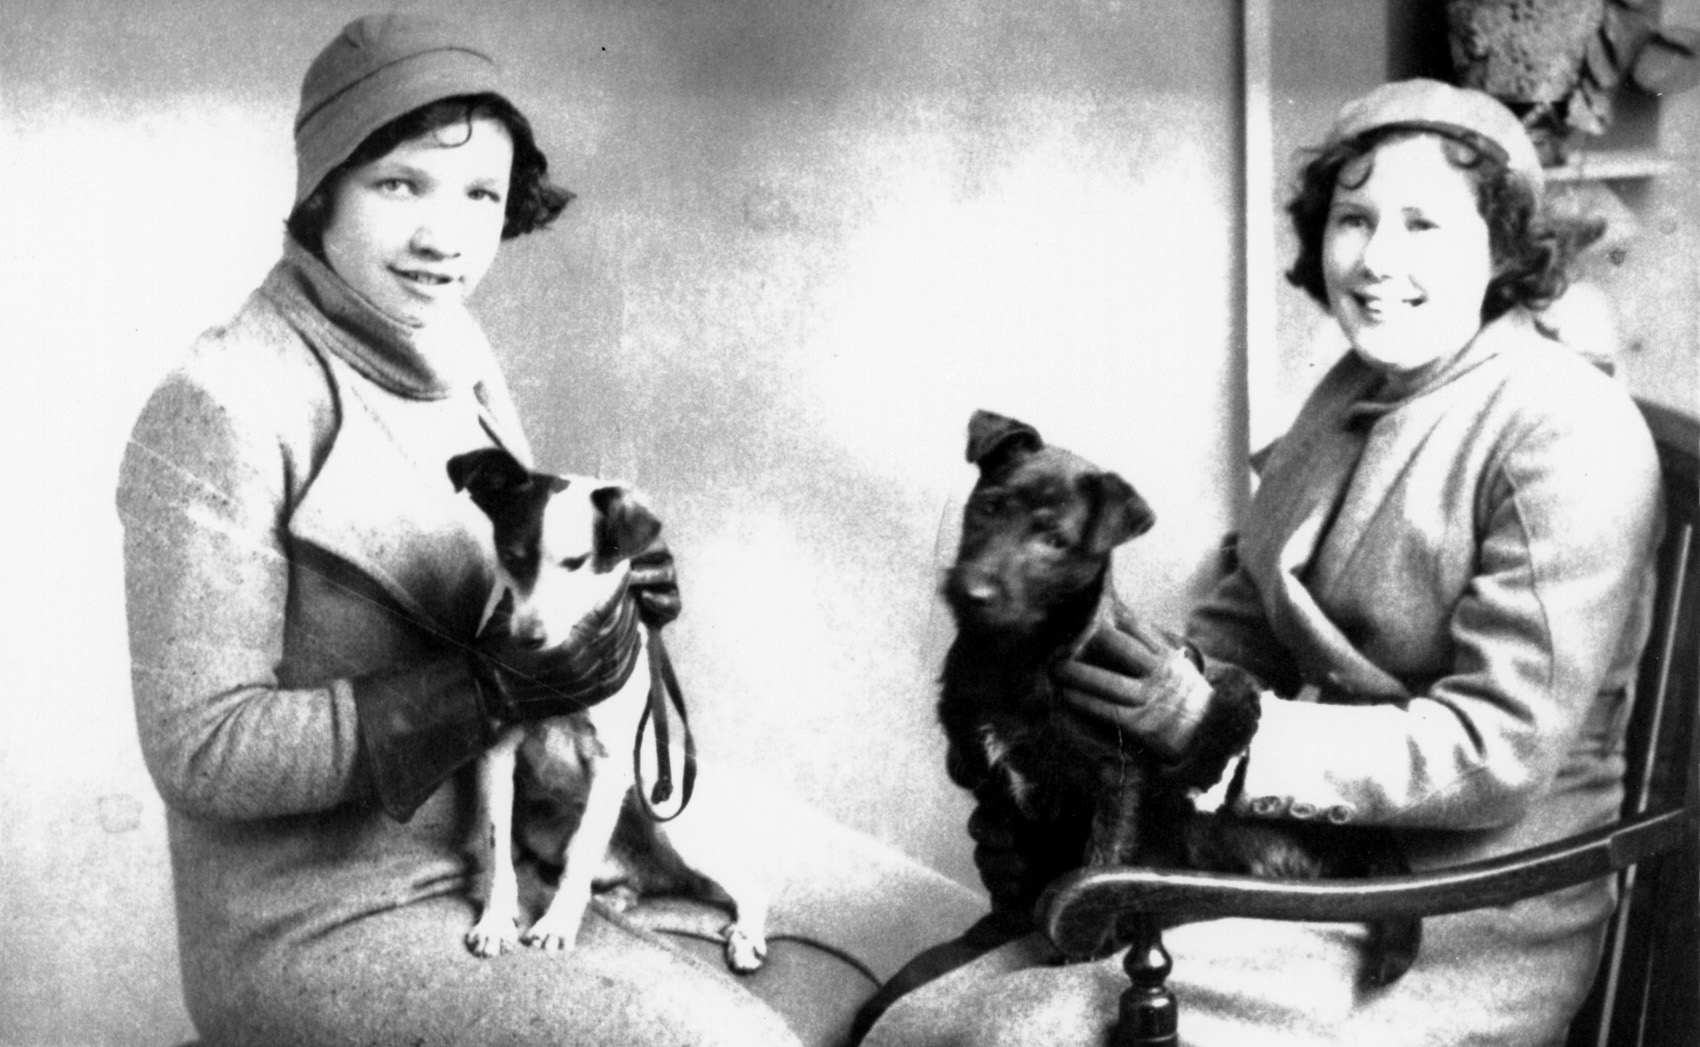 Studio Portrait Two Sisters With Pet Dogs 1934